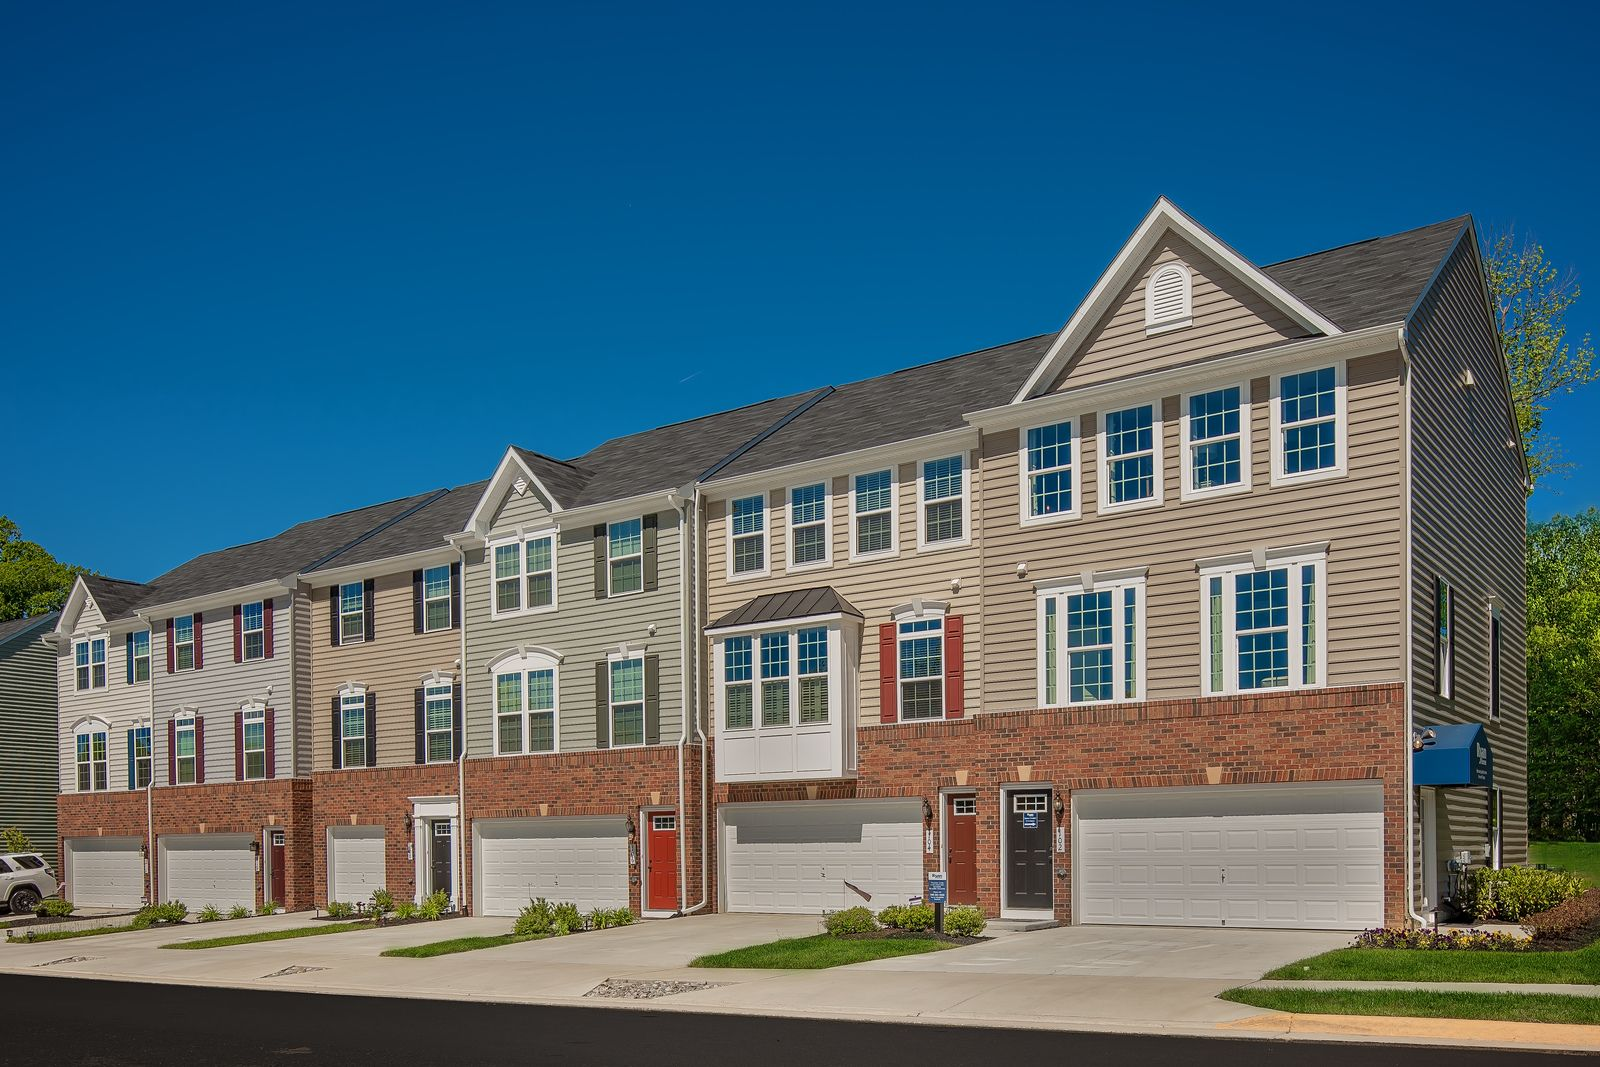 WELCOME HOME TO RAPPAHANNOCK LANDING:Stafford County's lowest priced community with backyards & amenities just minutes to I-95 Express Lanes, VRE & Downtown Fredericksburg, from theupper $200s!Schedule yourvisit today!